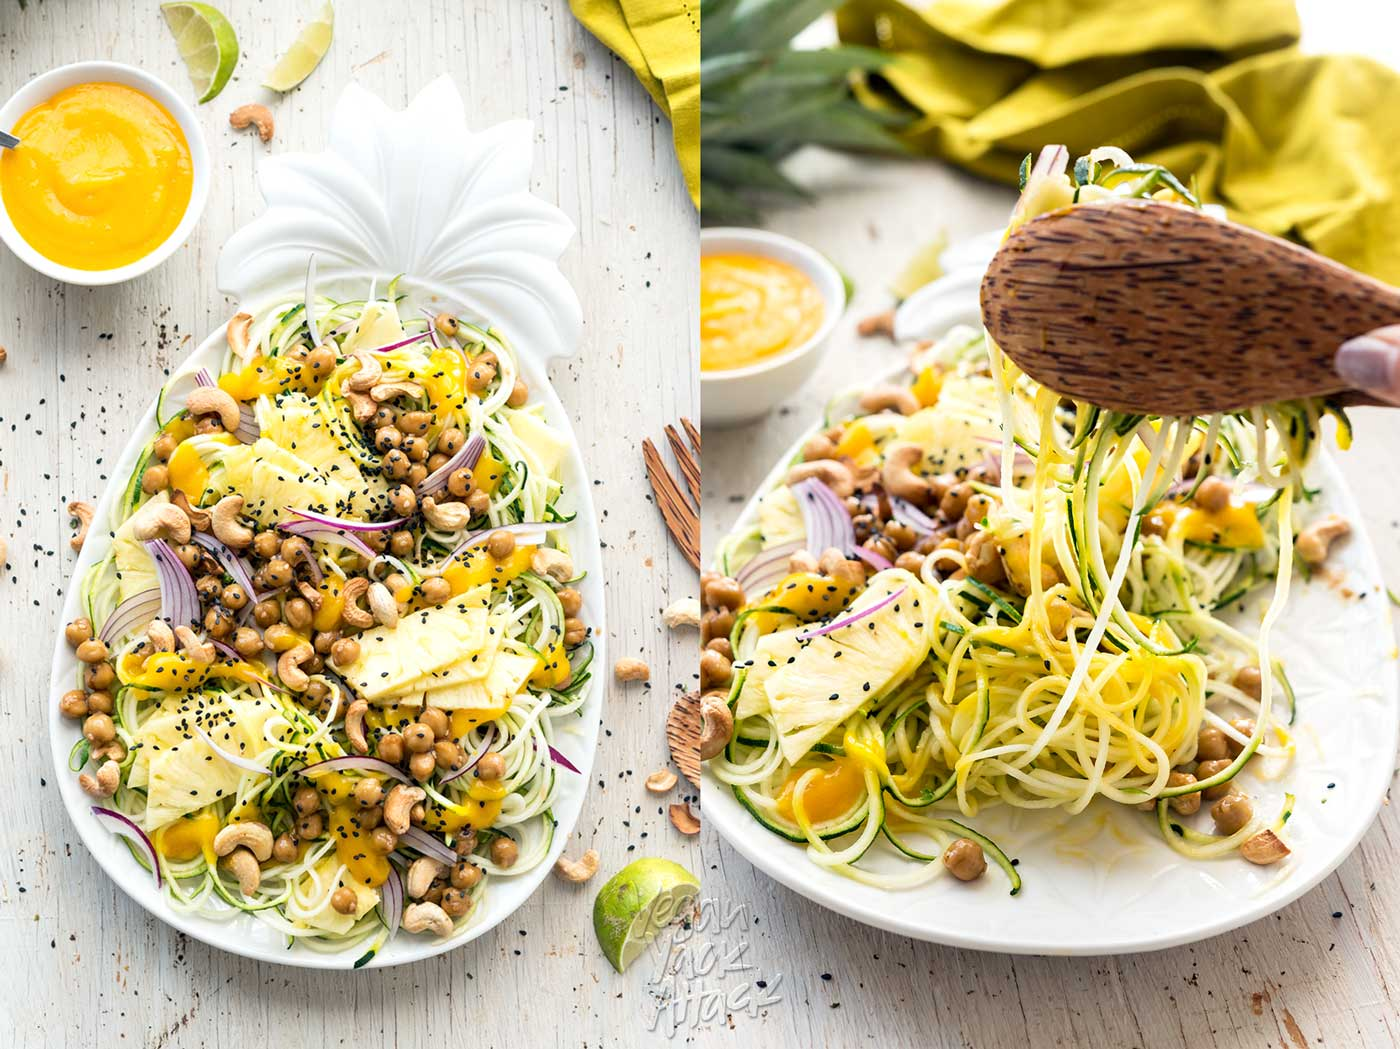 Pineapple Teriyaki Chickpea Zoodles! A fun and easy dish that is delicious and healthy. Serving it up on a pretty platter doesn't hurt either! #vegan #veganyackattack #lenoxusa